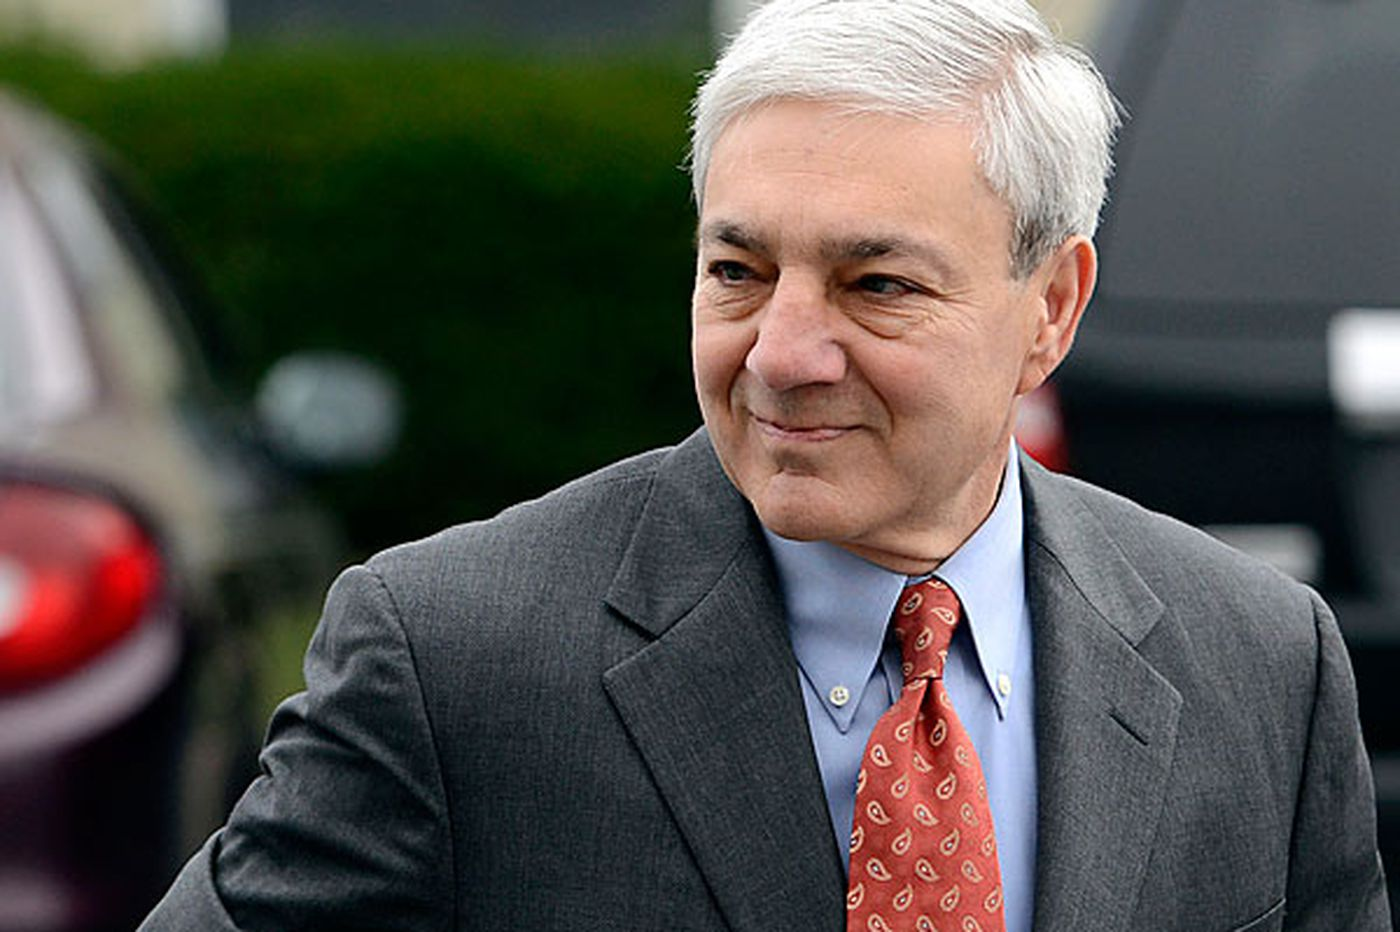 Spanier was among top-paid college presidents